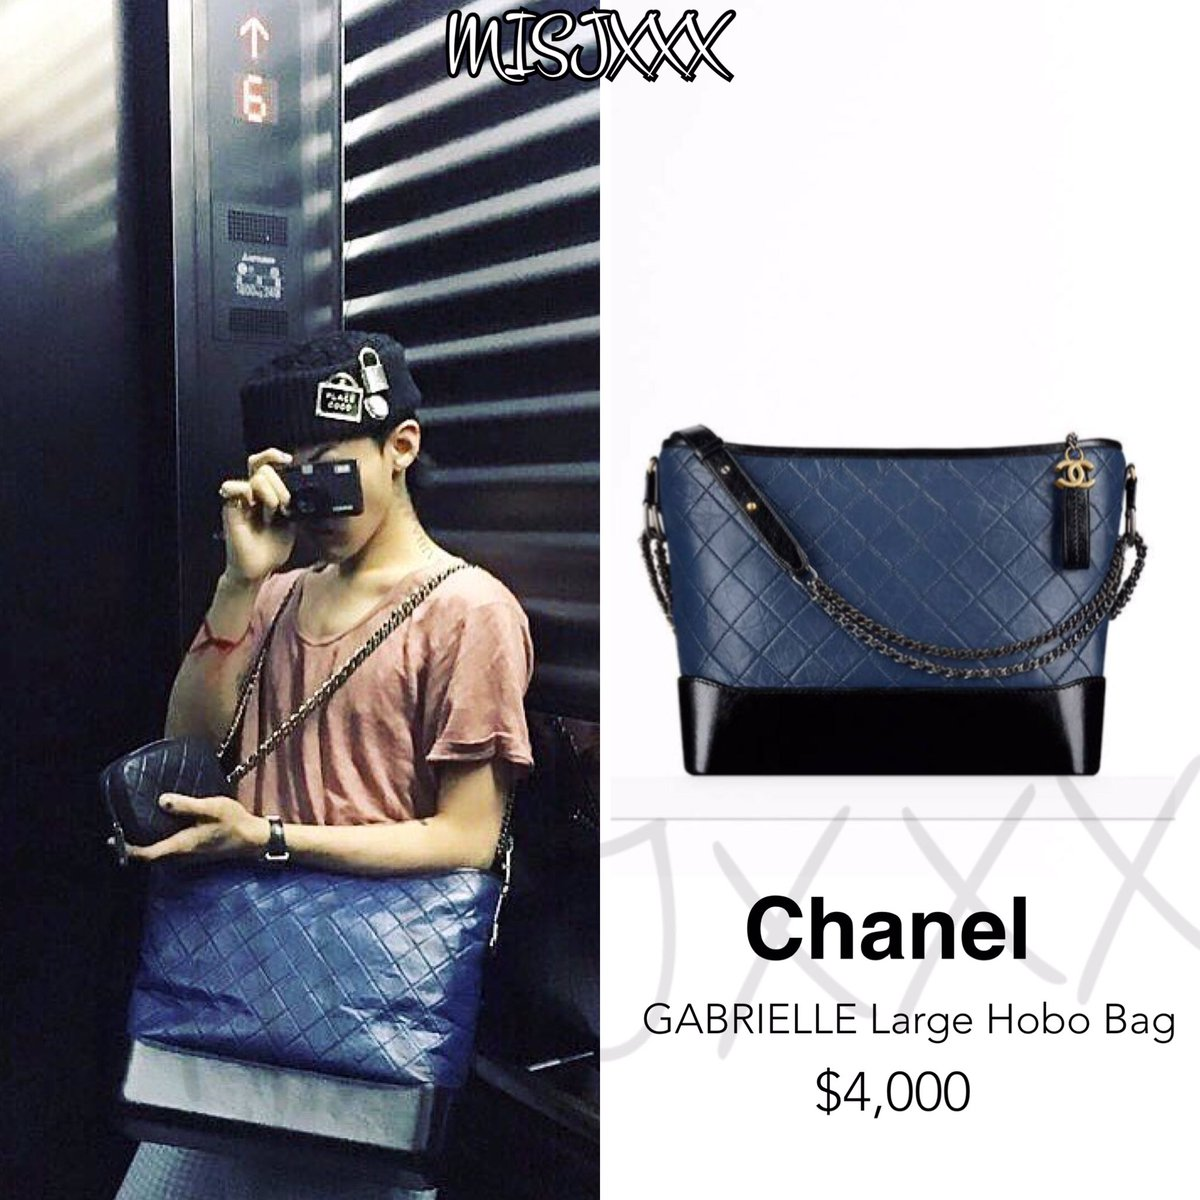 3113338f5fcf #CHANEL GABRIELLE Large Hobo Bag.($4,000) #gdragon  #gdpic.twitter.com/7zsbrX47qs